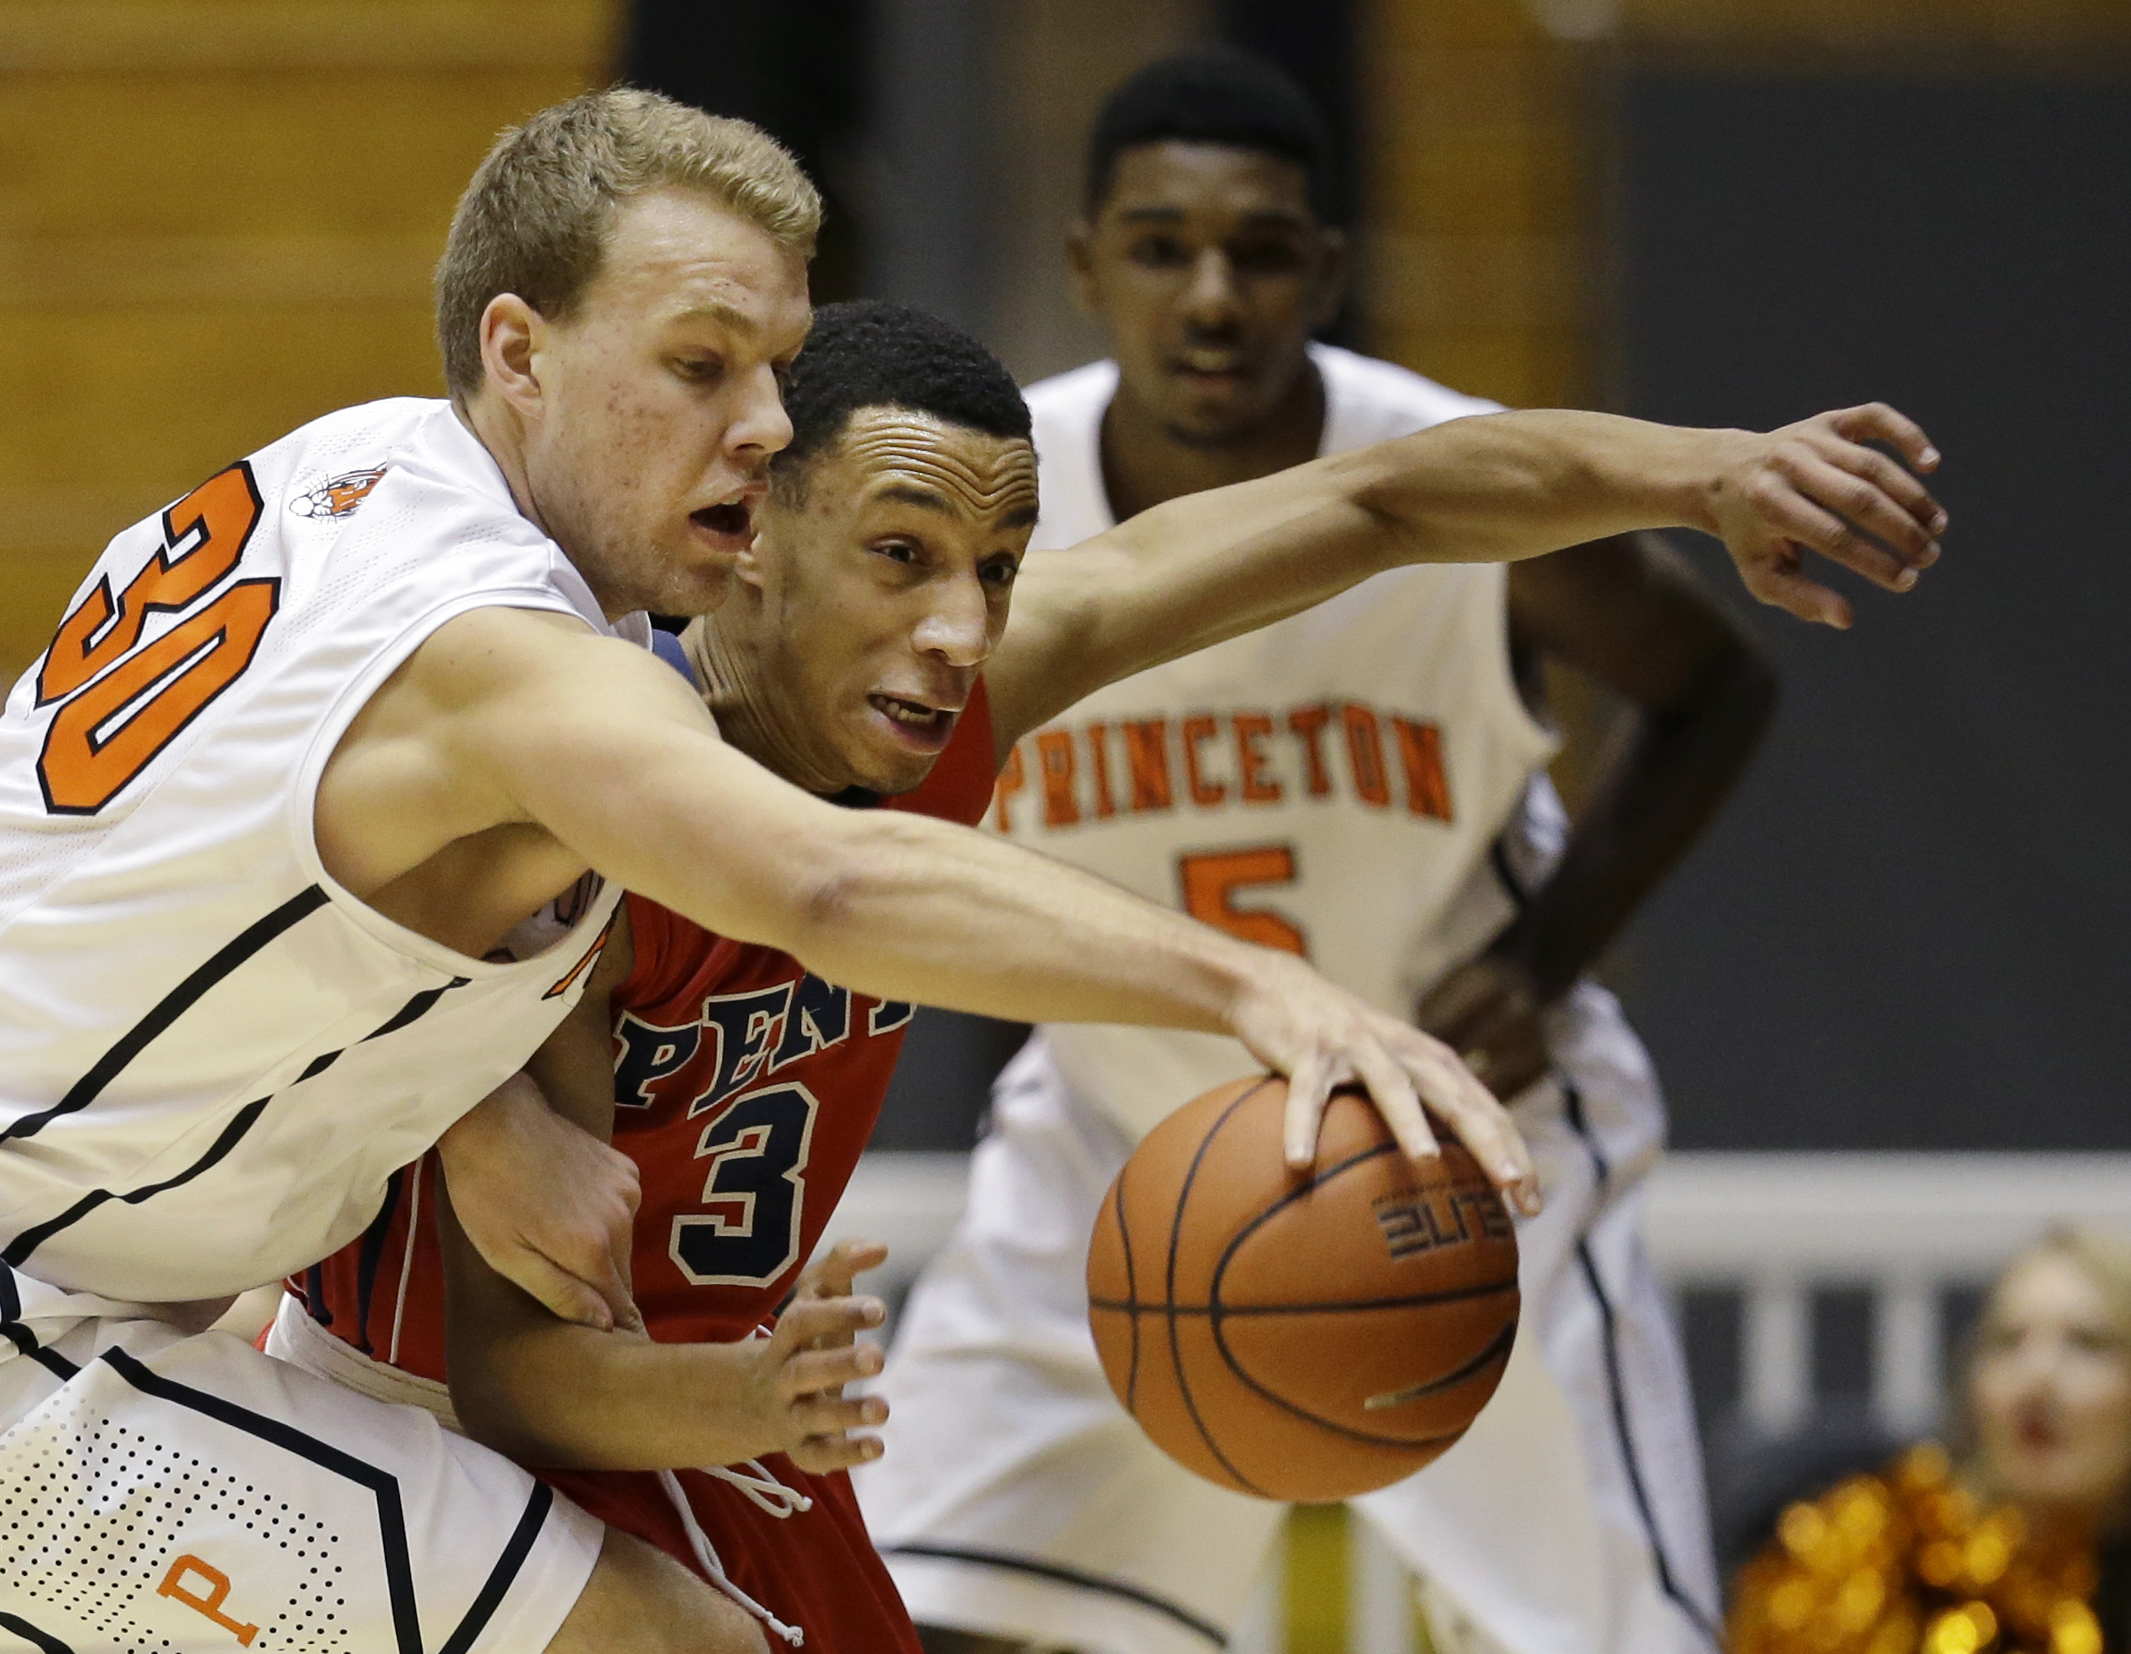 Princeton forward Hans Brase (30) tries to control the ball in front of Penn guard Darnell Foreman (3) during the first half of an NCAA college basketball game Saturday, Jan. 10, 2015, in Princeton, N.J. (AP Photo/Mel Evans)